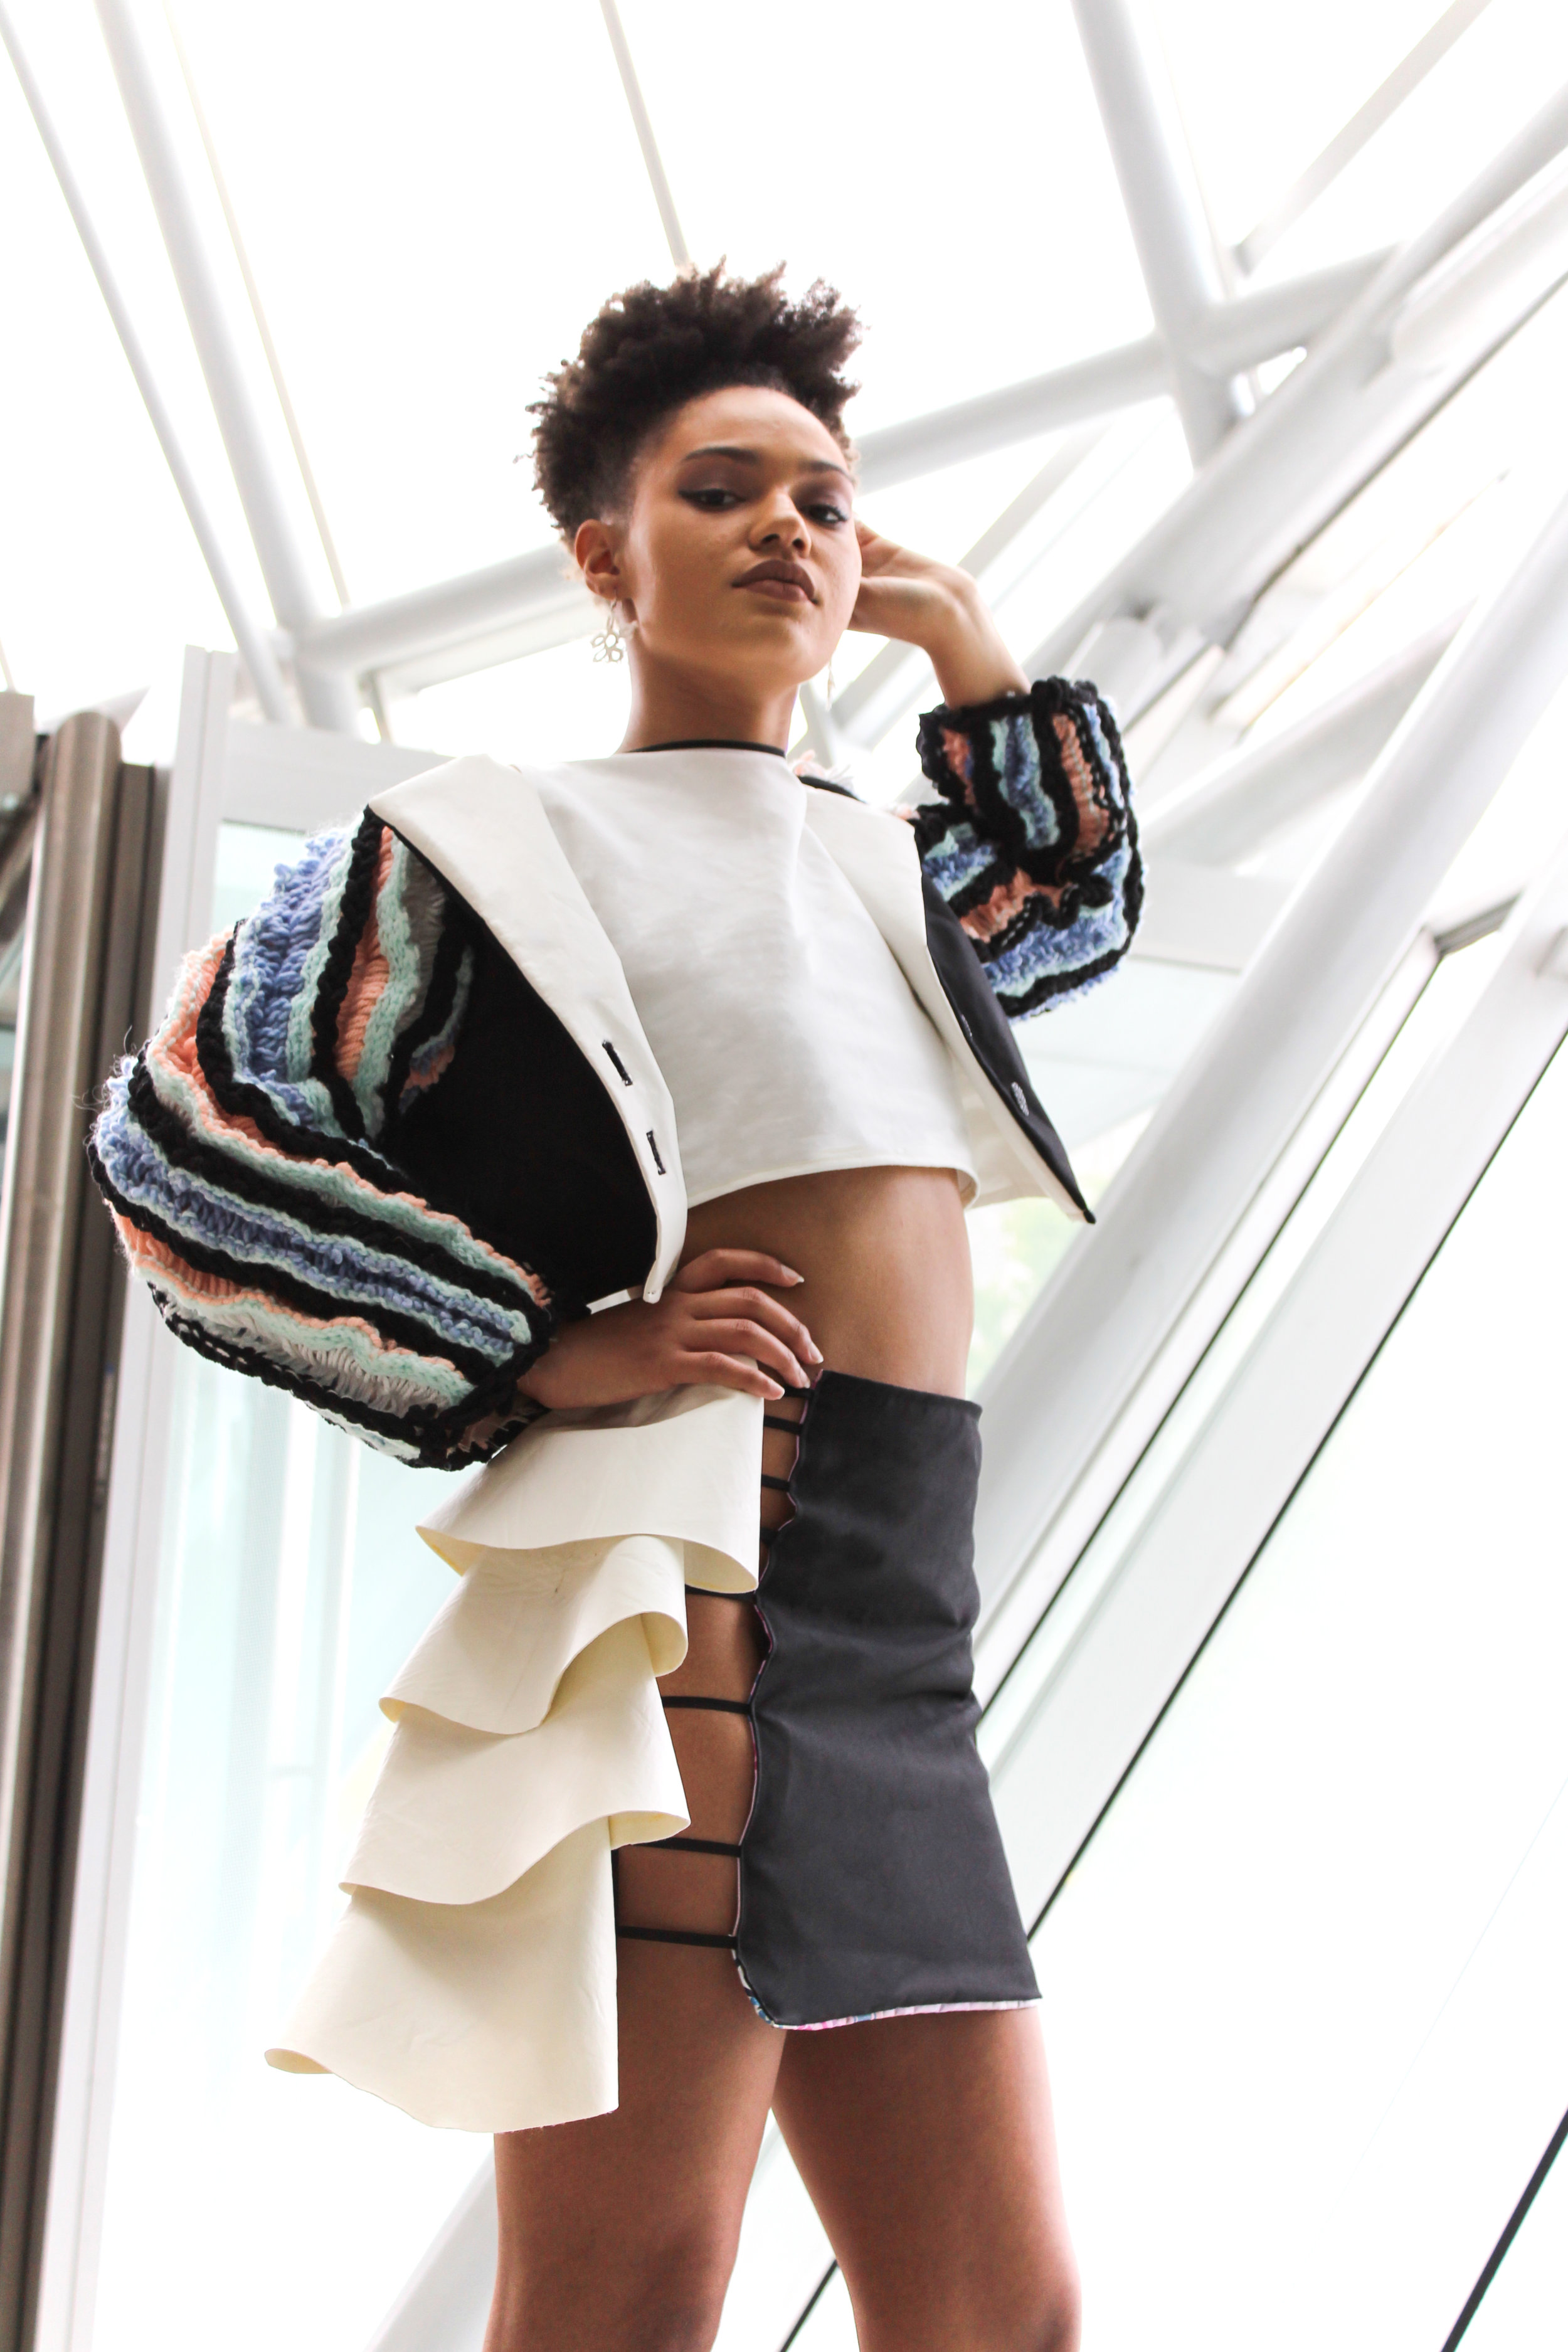 MAYA -fierce, playful, artistic - White Crop Top (cotton)Coral Arm Blazers (acrylic yarn, polyester, faux leather)Open Side Mini-Skirt (polyester, cotton, faux leather)Tatted Lace Earrings (thread floss)